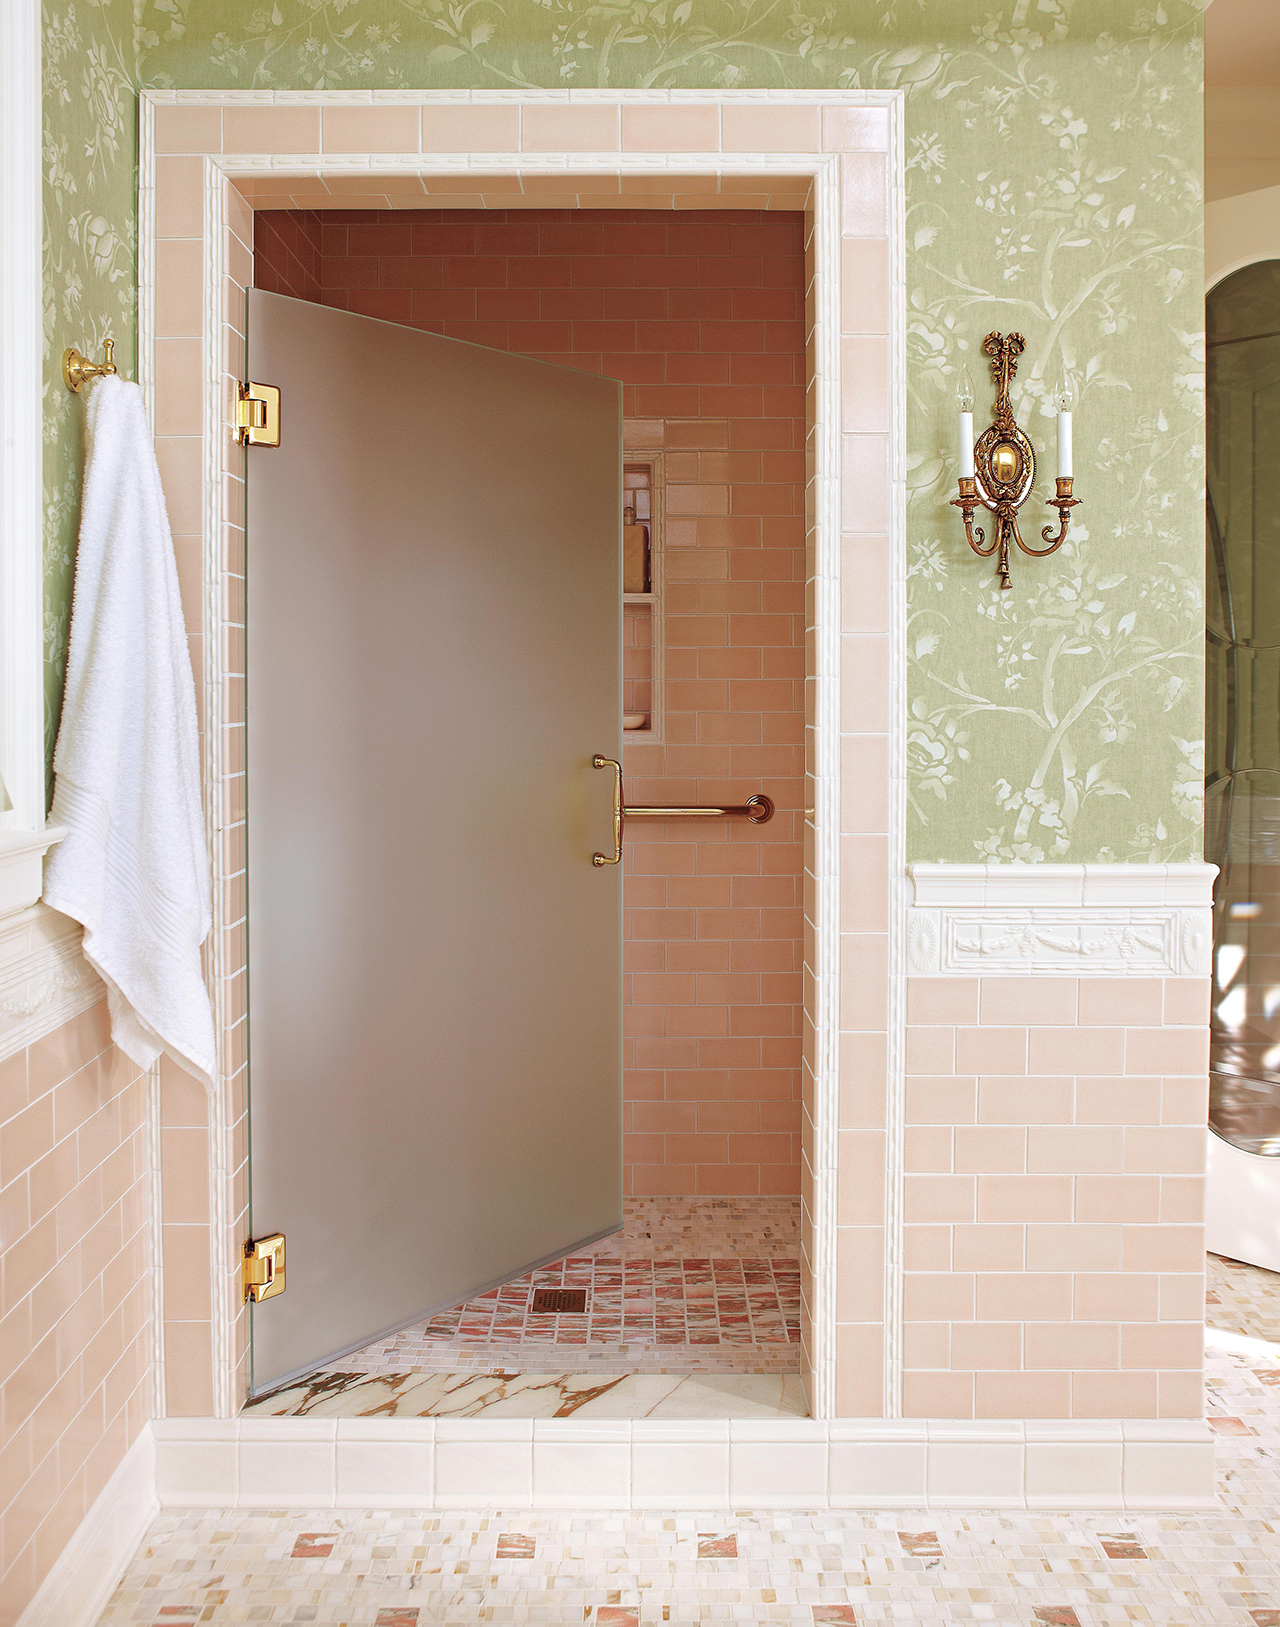 shower room wide door pink tiles